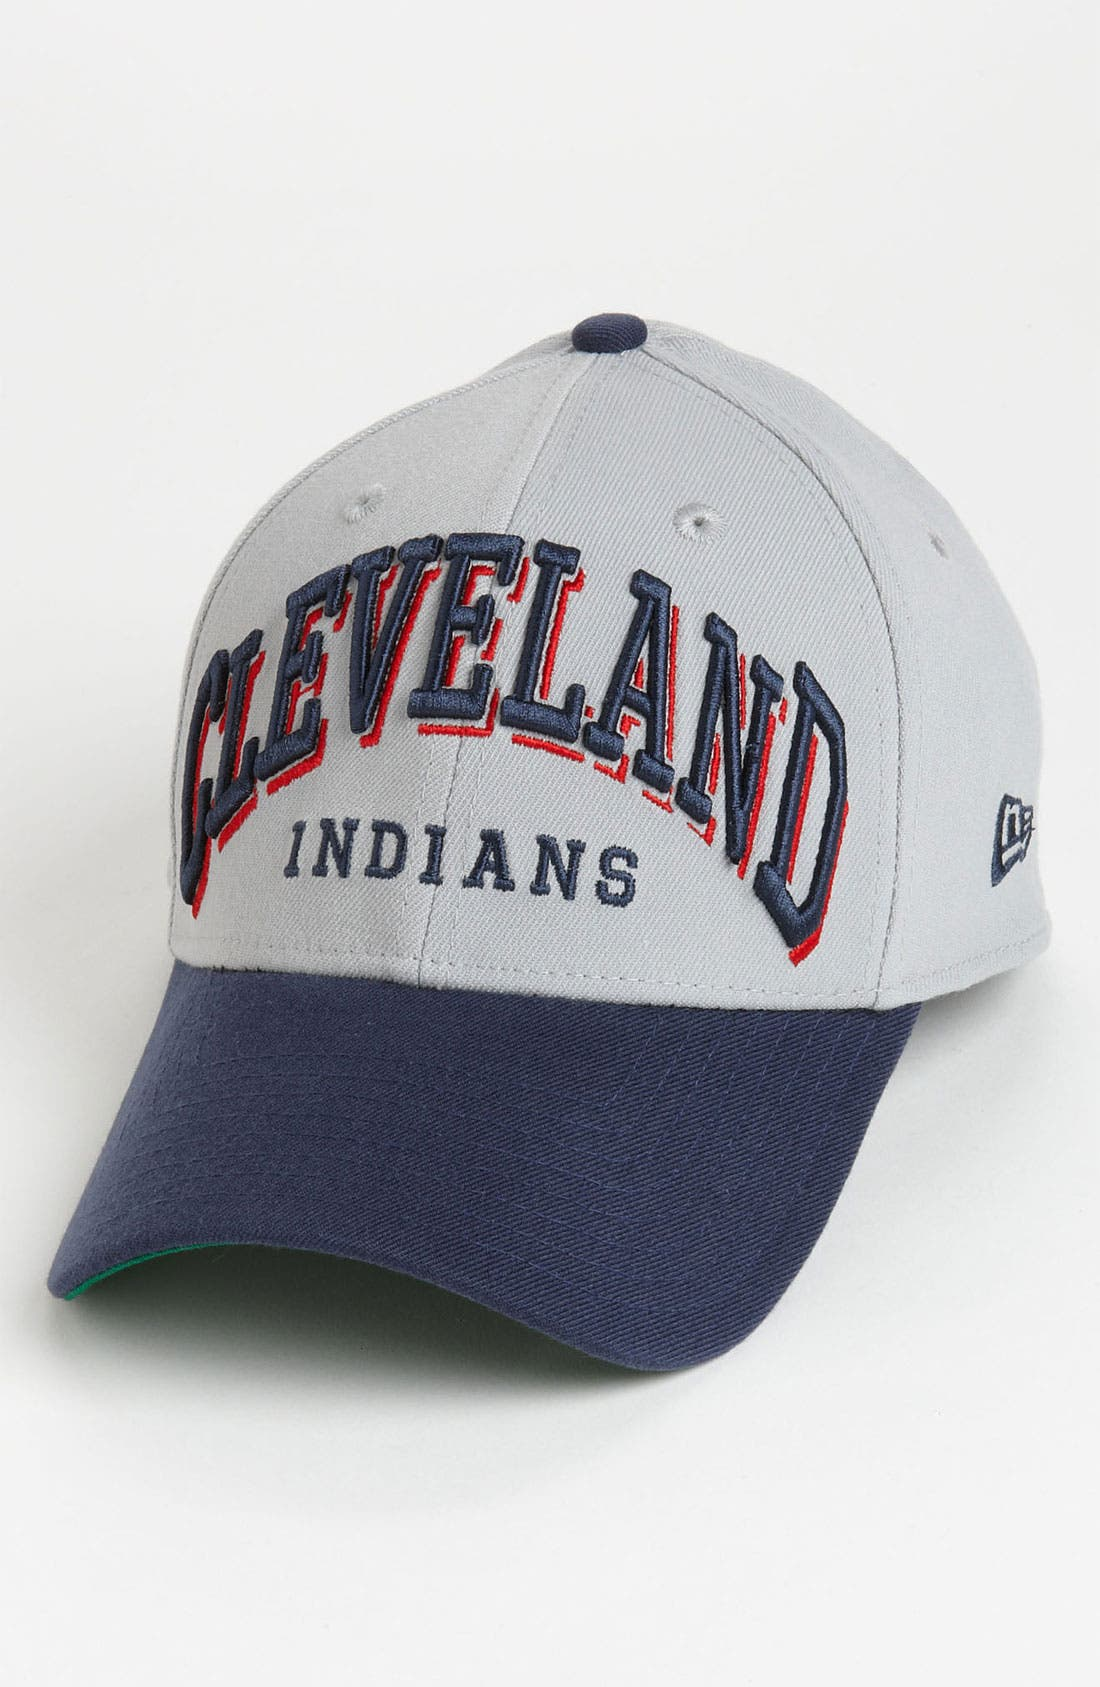 Alternate Image 1 Selected - New Era Cap 'Cleveland Indians - Arch Mark' Fitted Baseball Cap